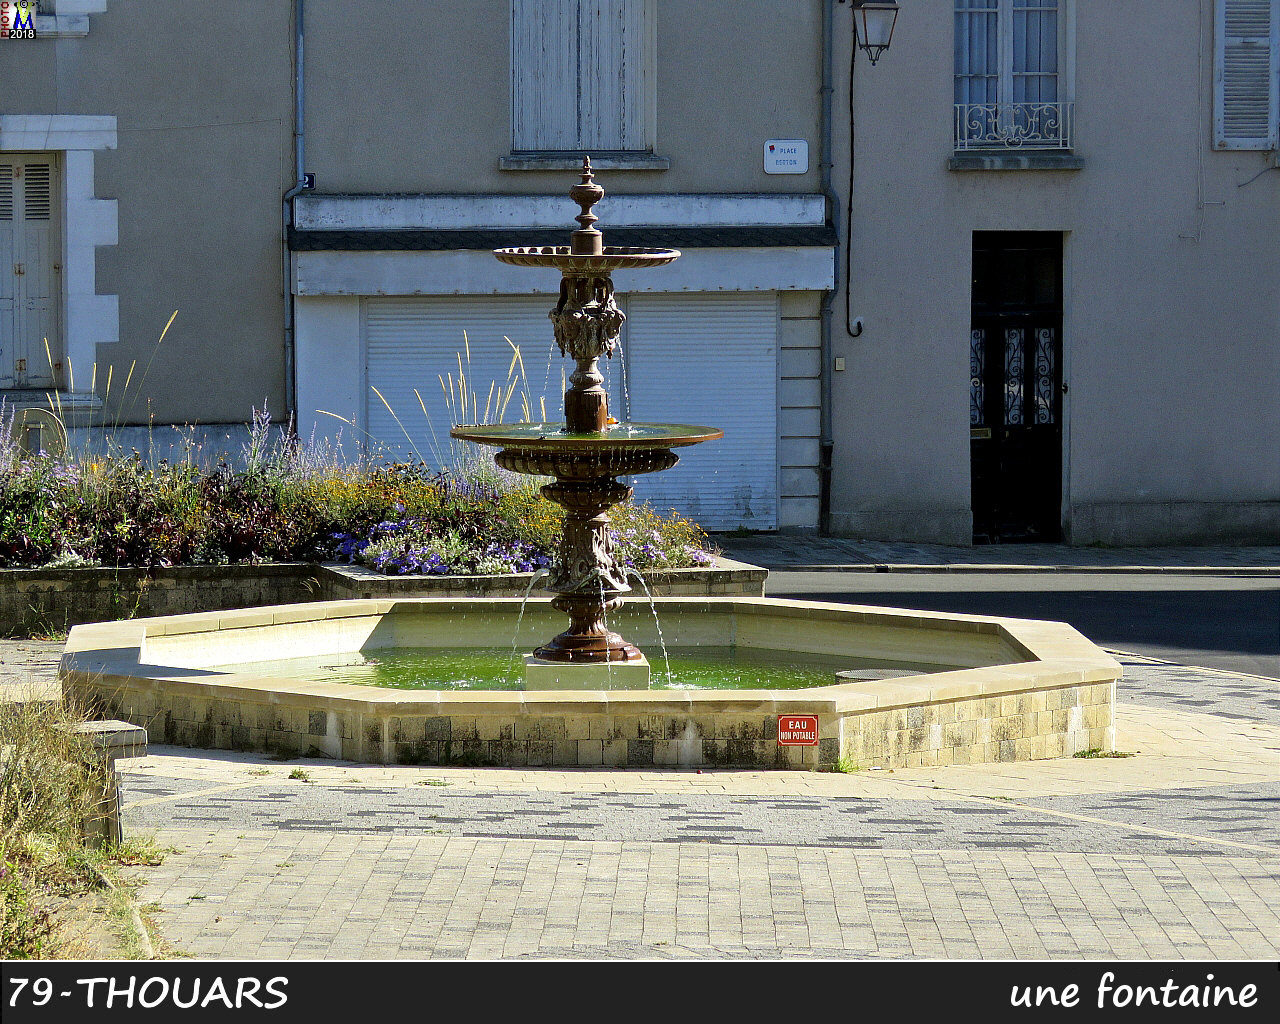 79THOUARS_fontaine_1000.jpg